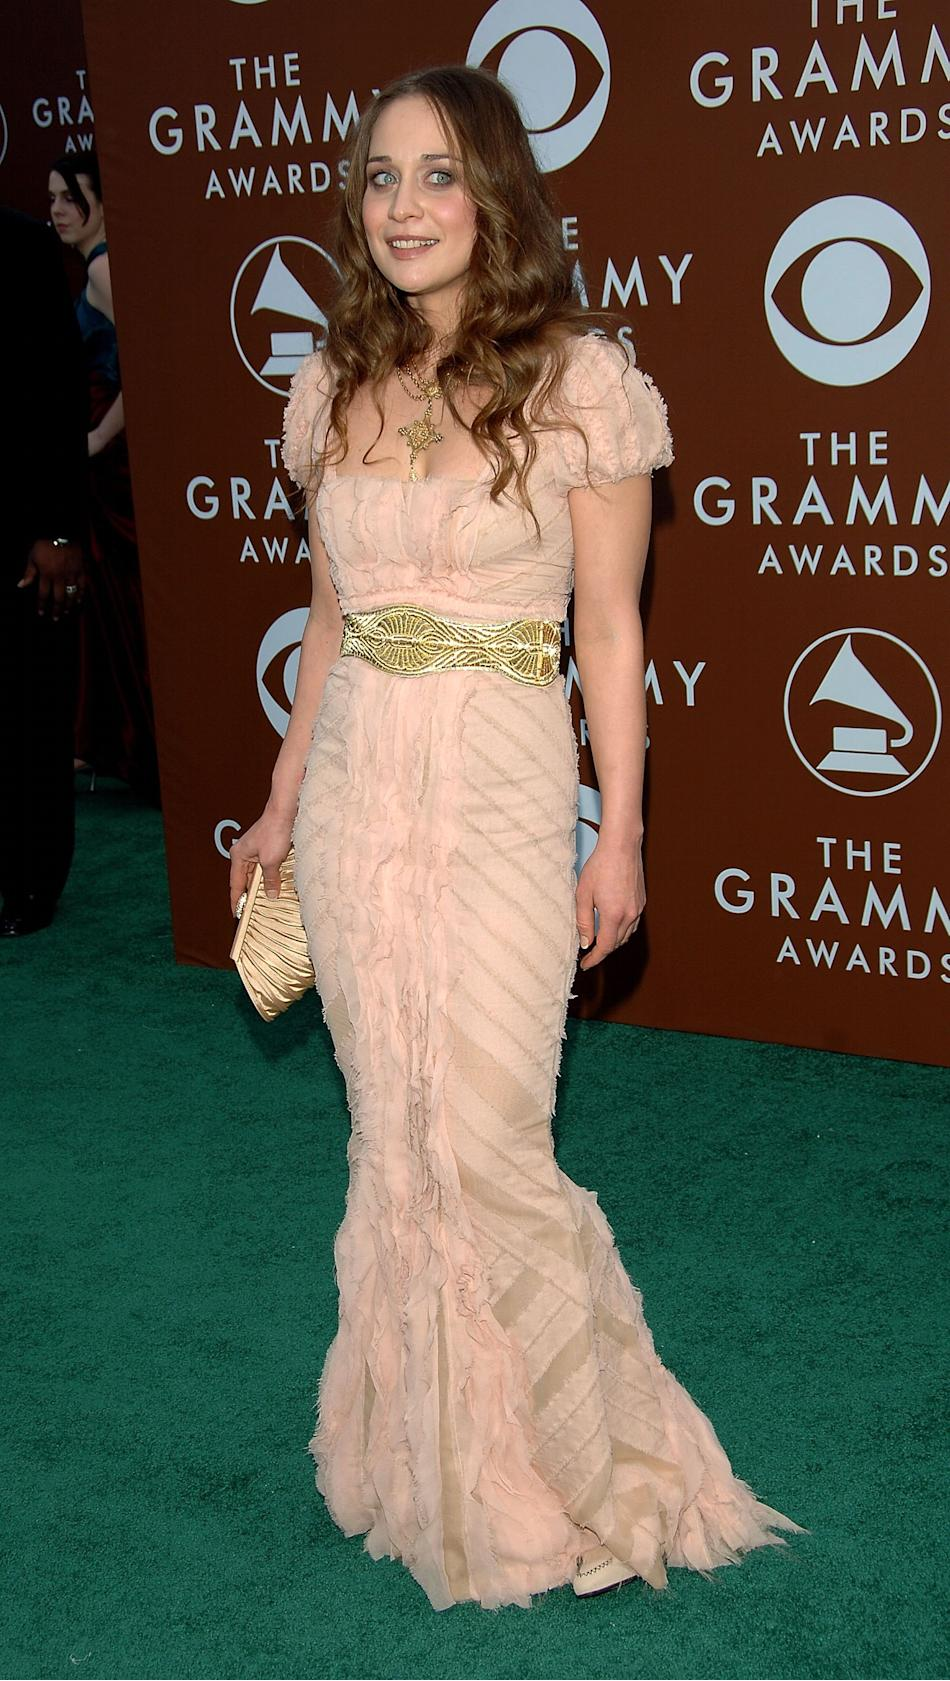 At the 2006 GRAMMYs, Fiona pulled off an ethereal gothic mermaid vibe in a floor-length unfinished gown with intricate gold accessories, earth-tone make-up and soft waves. (Photo by Kevin Mazur/WireIm